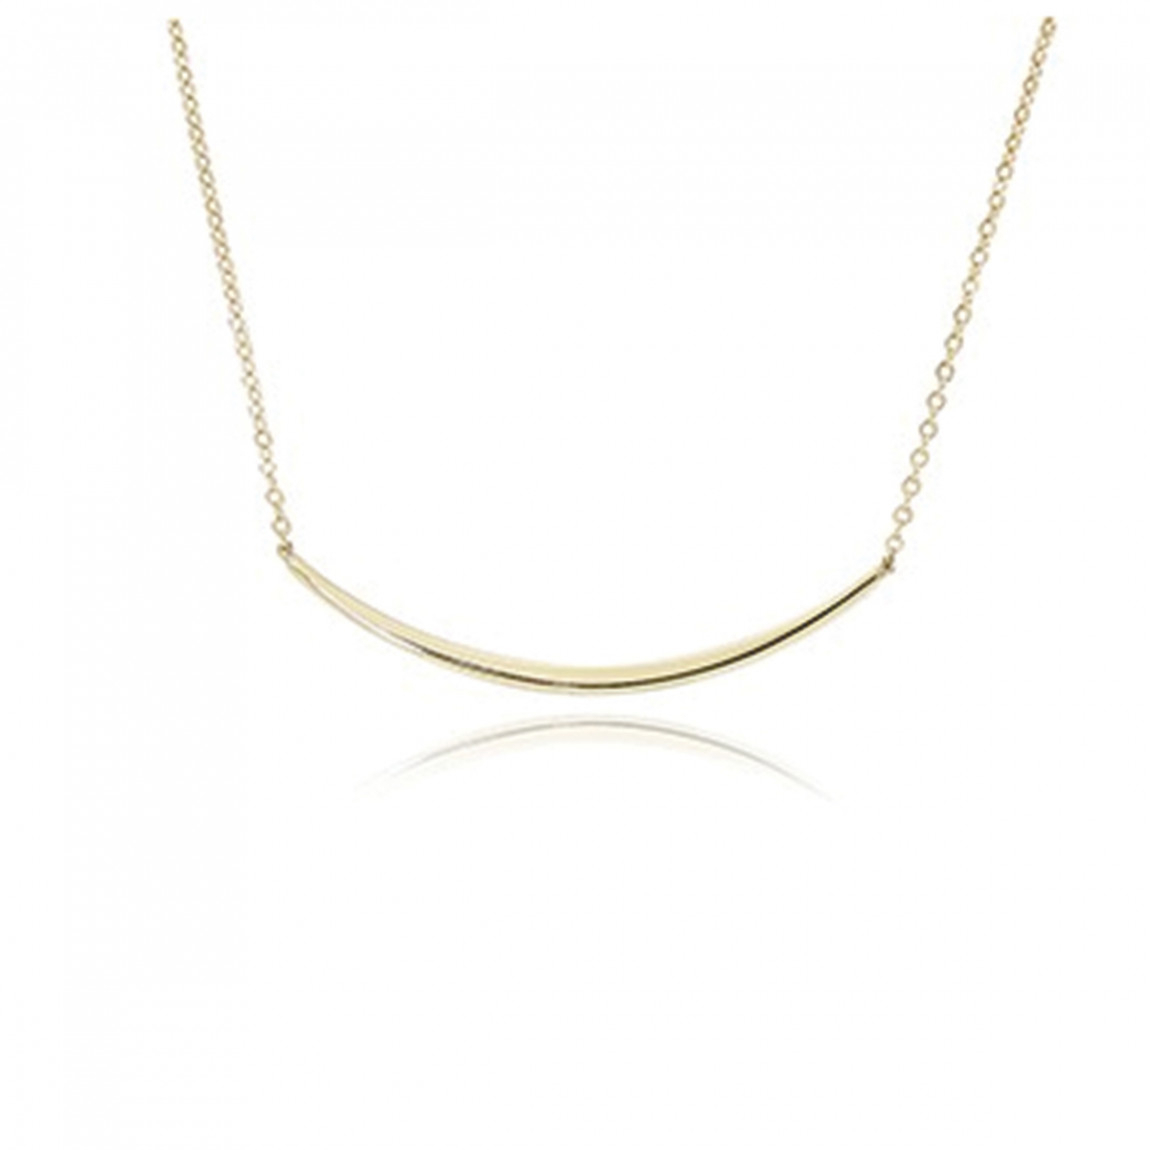 Curved Bar Necklace, 14k Yellow Gold Regarding Best And Newest Sparkling Curved Bar Necklaces (View 6 of 25)